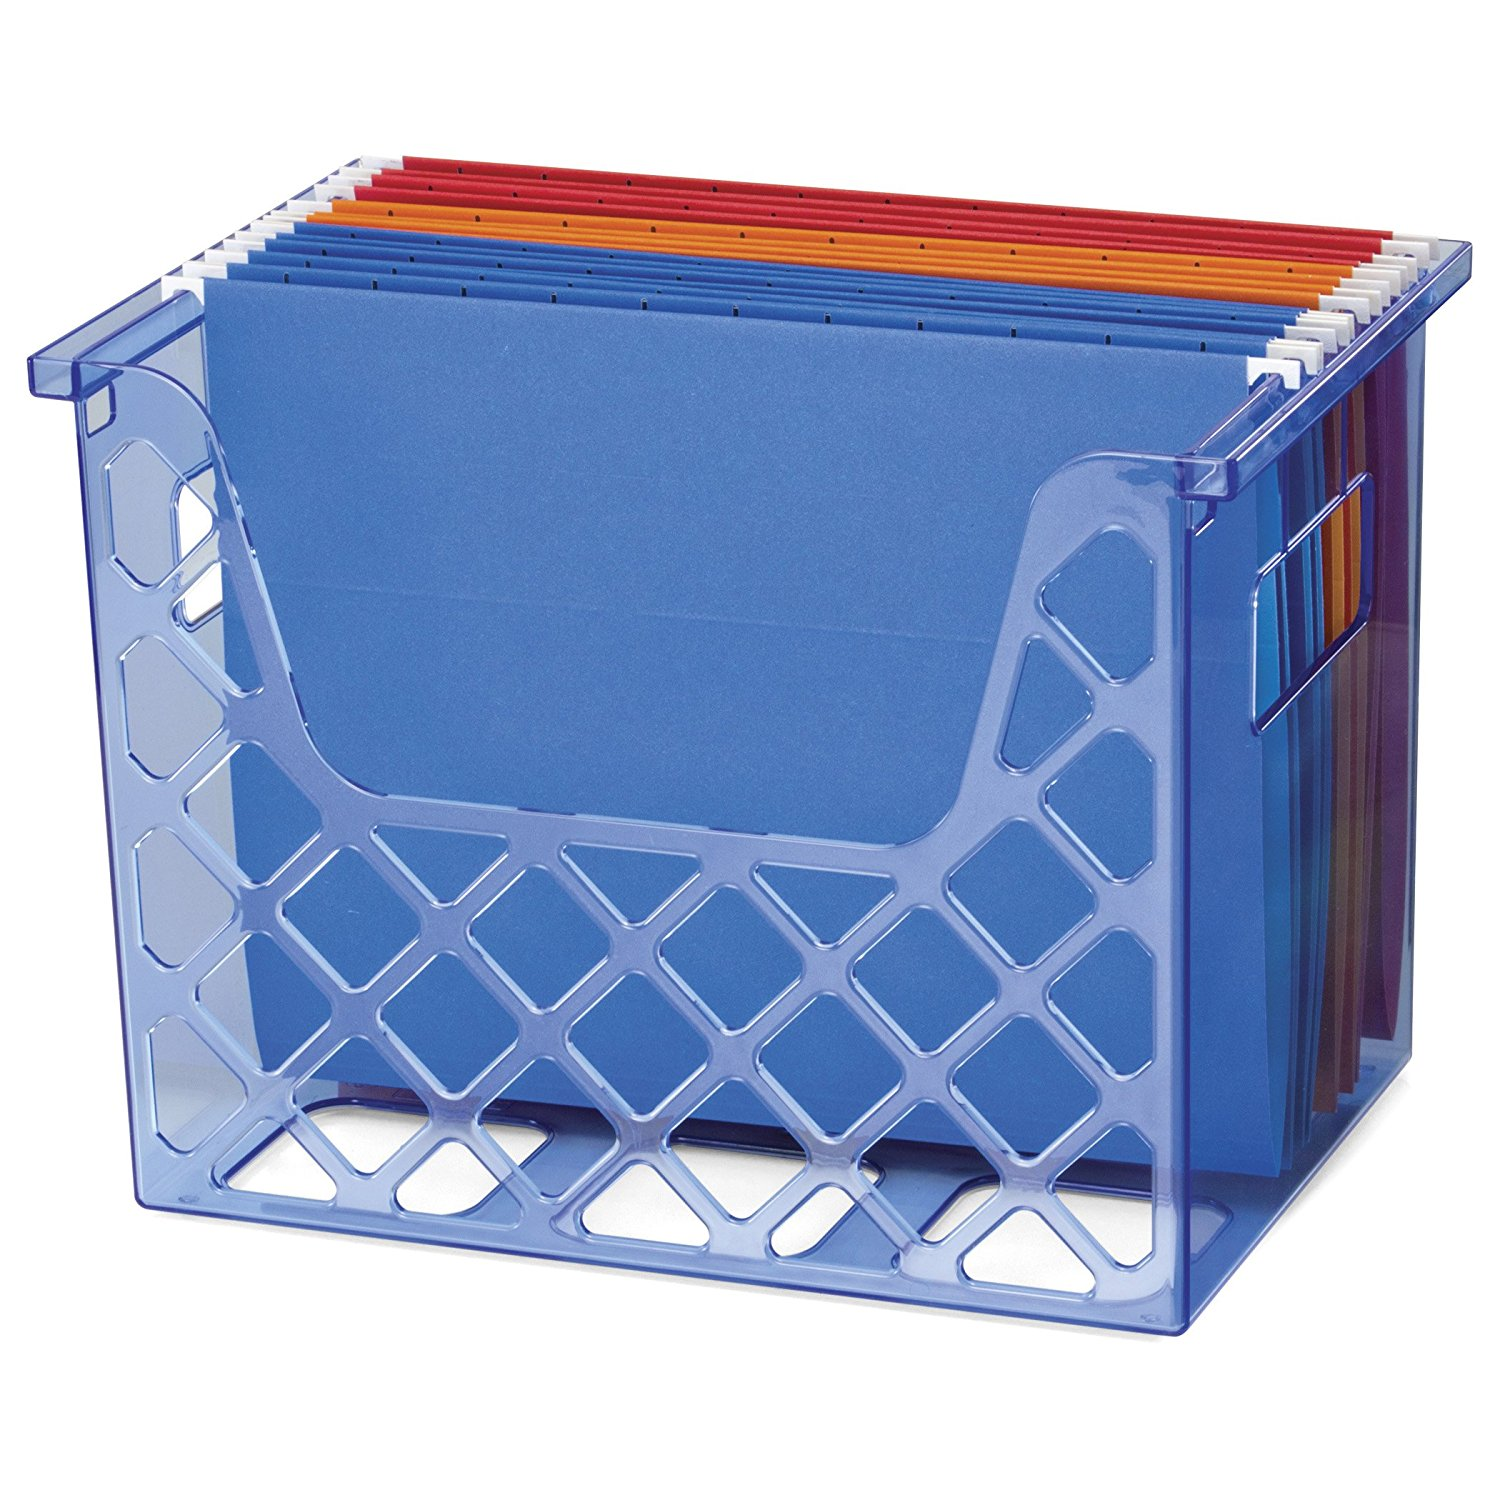 OIC Blue Glacier Desktop File Organizer, Transparent Blue (23221)Hang grips for carrying By Officemate